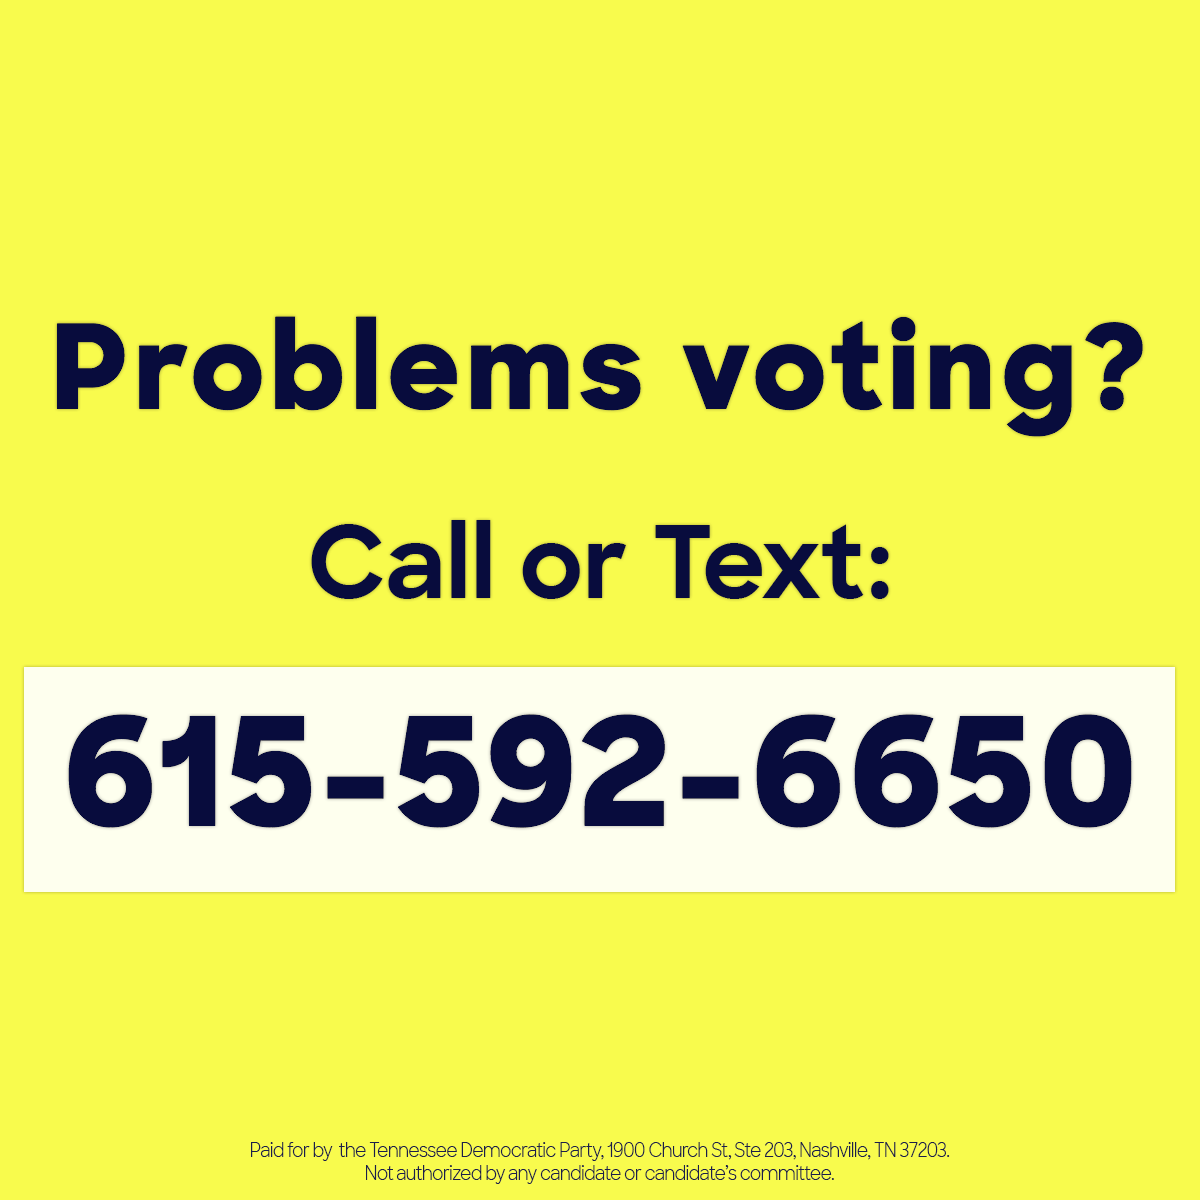 Problems Voting - call or text 615-592-6650